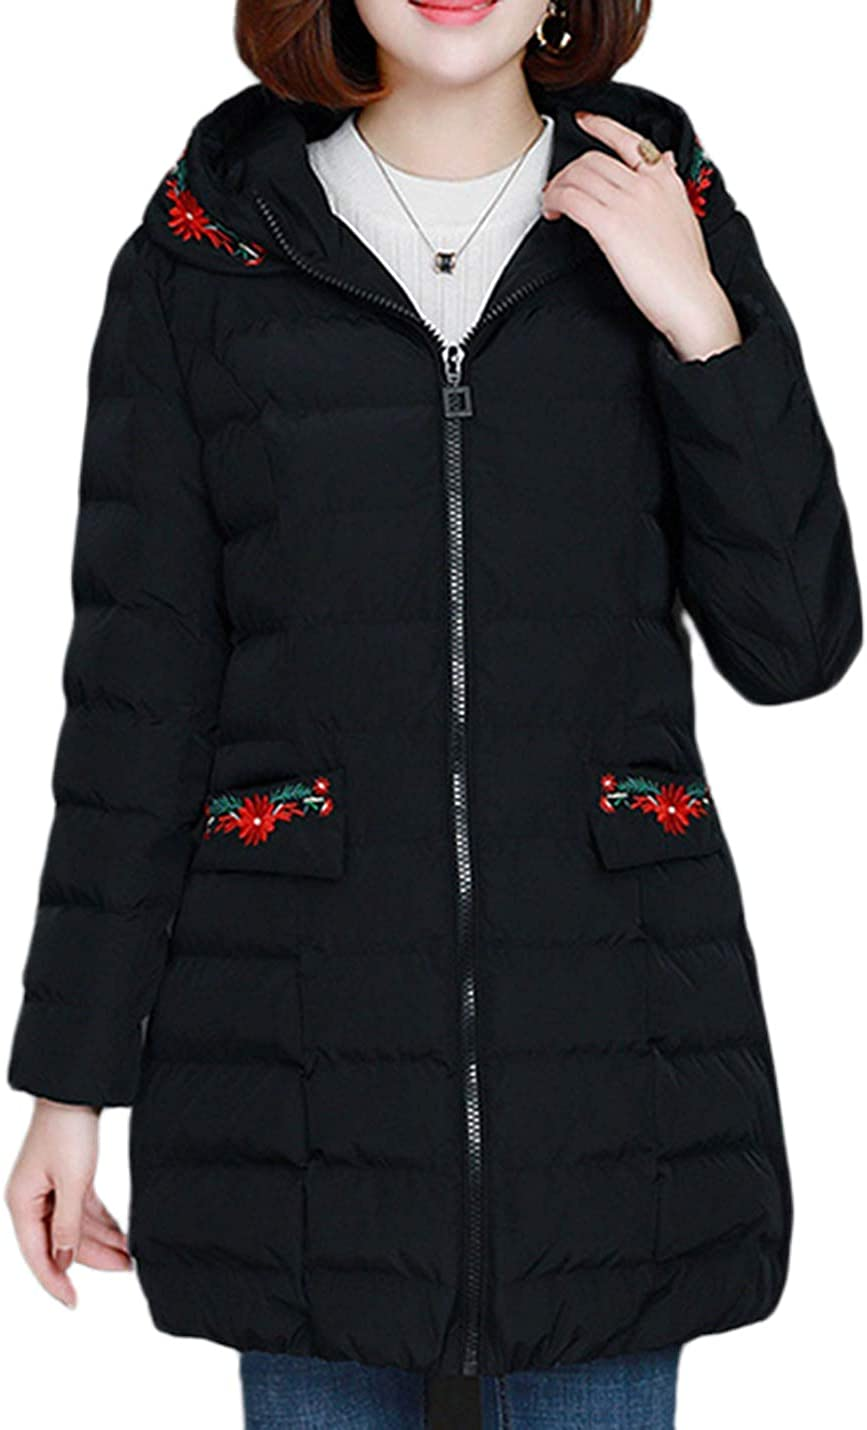 Uaneo Women's Loose Casual Thick Embroidered Hoodie Quilted Padded Puffy Parka Jackets(Black-M)